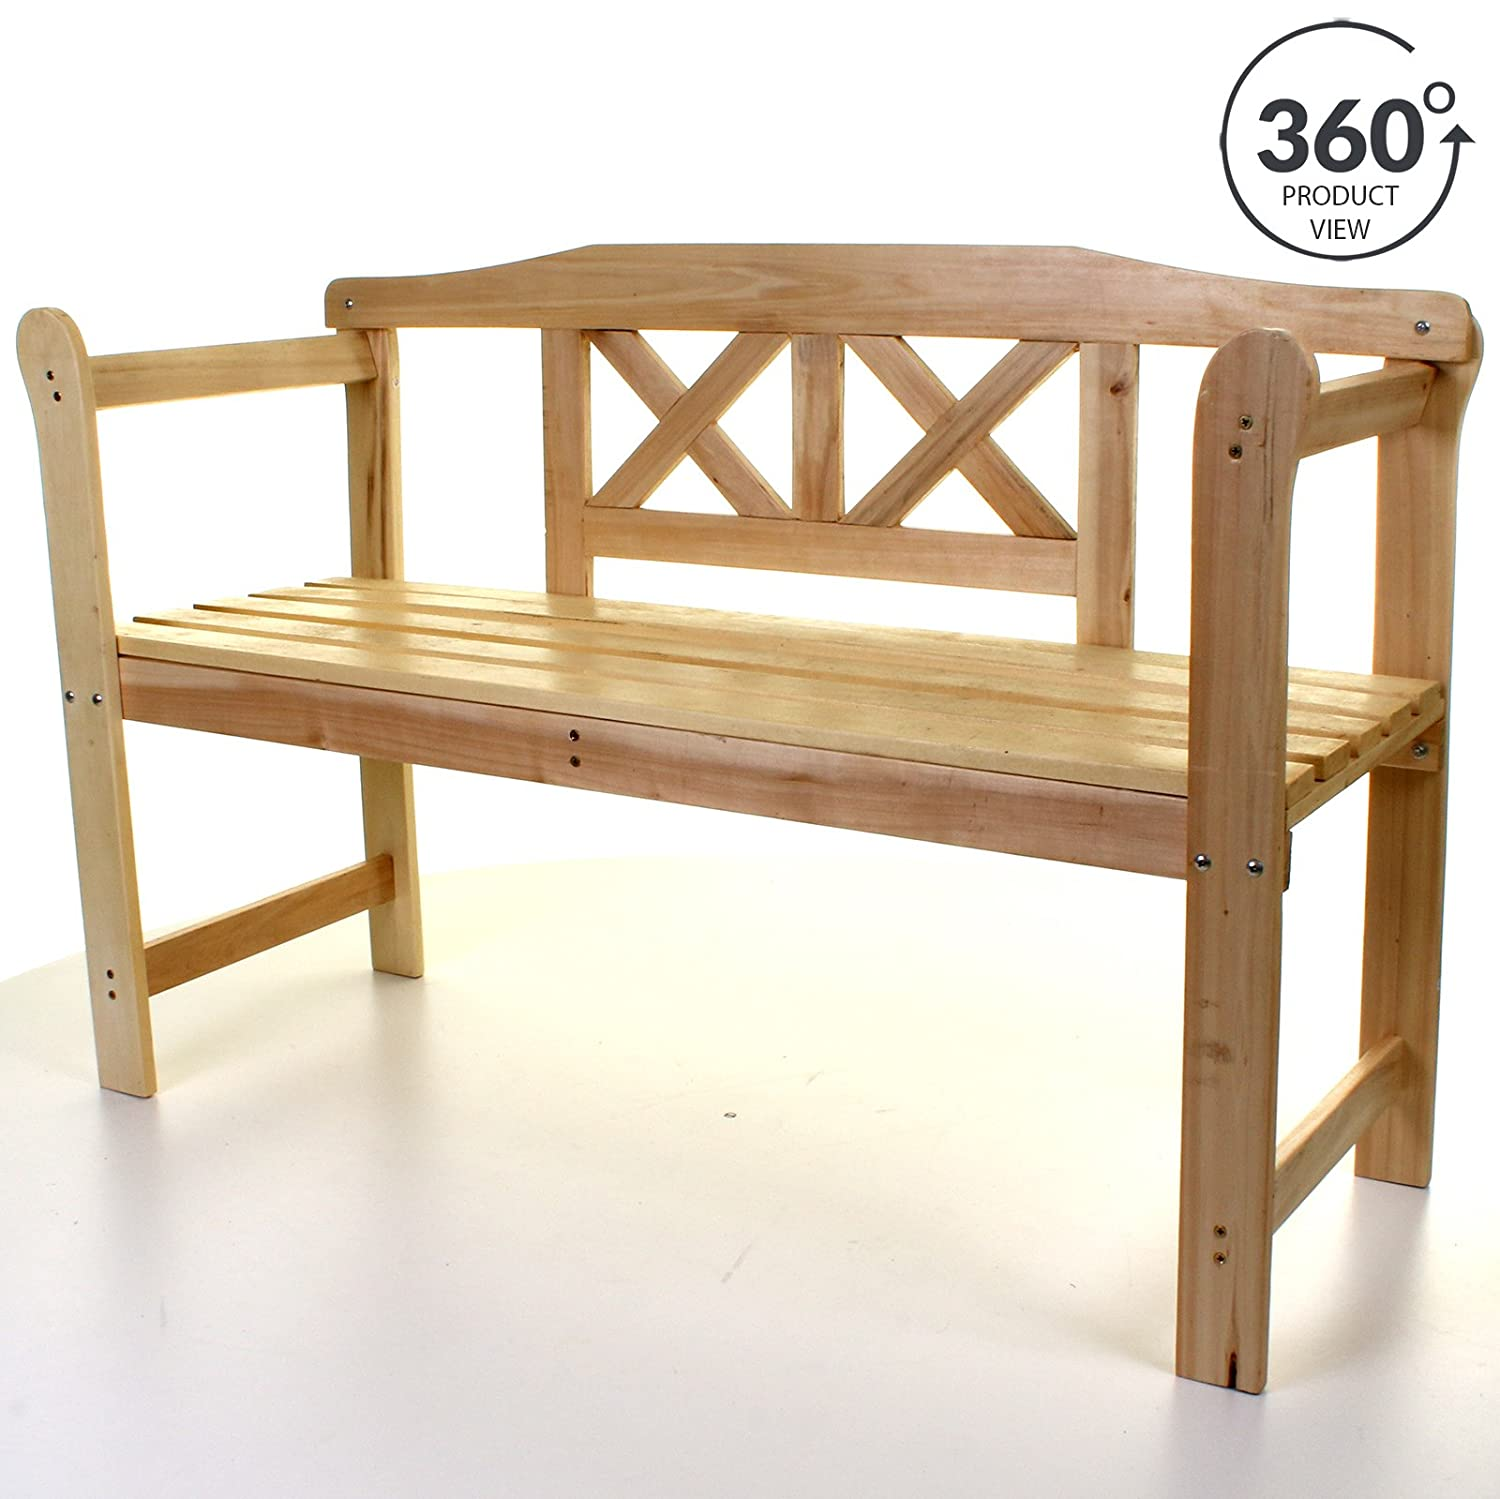 Marko Outdoor Garden Wooden Bench Seat 3 Seater Patio Seating Large with Armrests